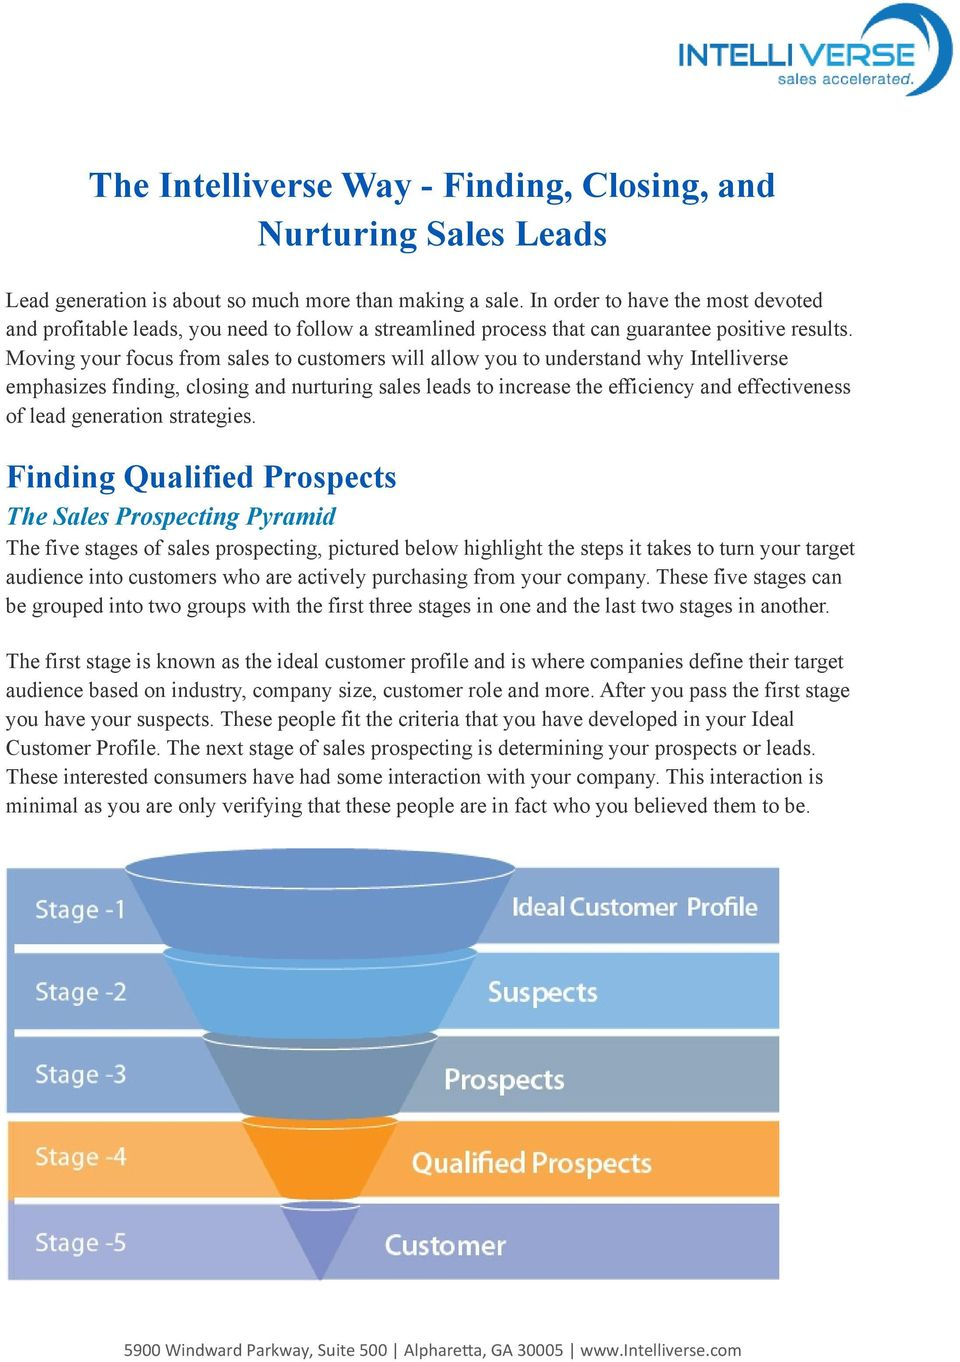 Moving your focus from sales to customers will allow you to understand why Intelliverse emphasizes finding, closing and nurturing sales leads to increase the efficiency and effectiveness of lead